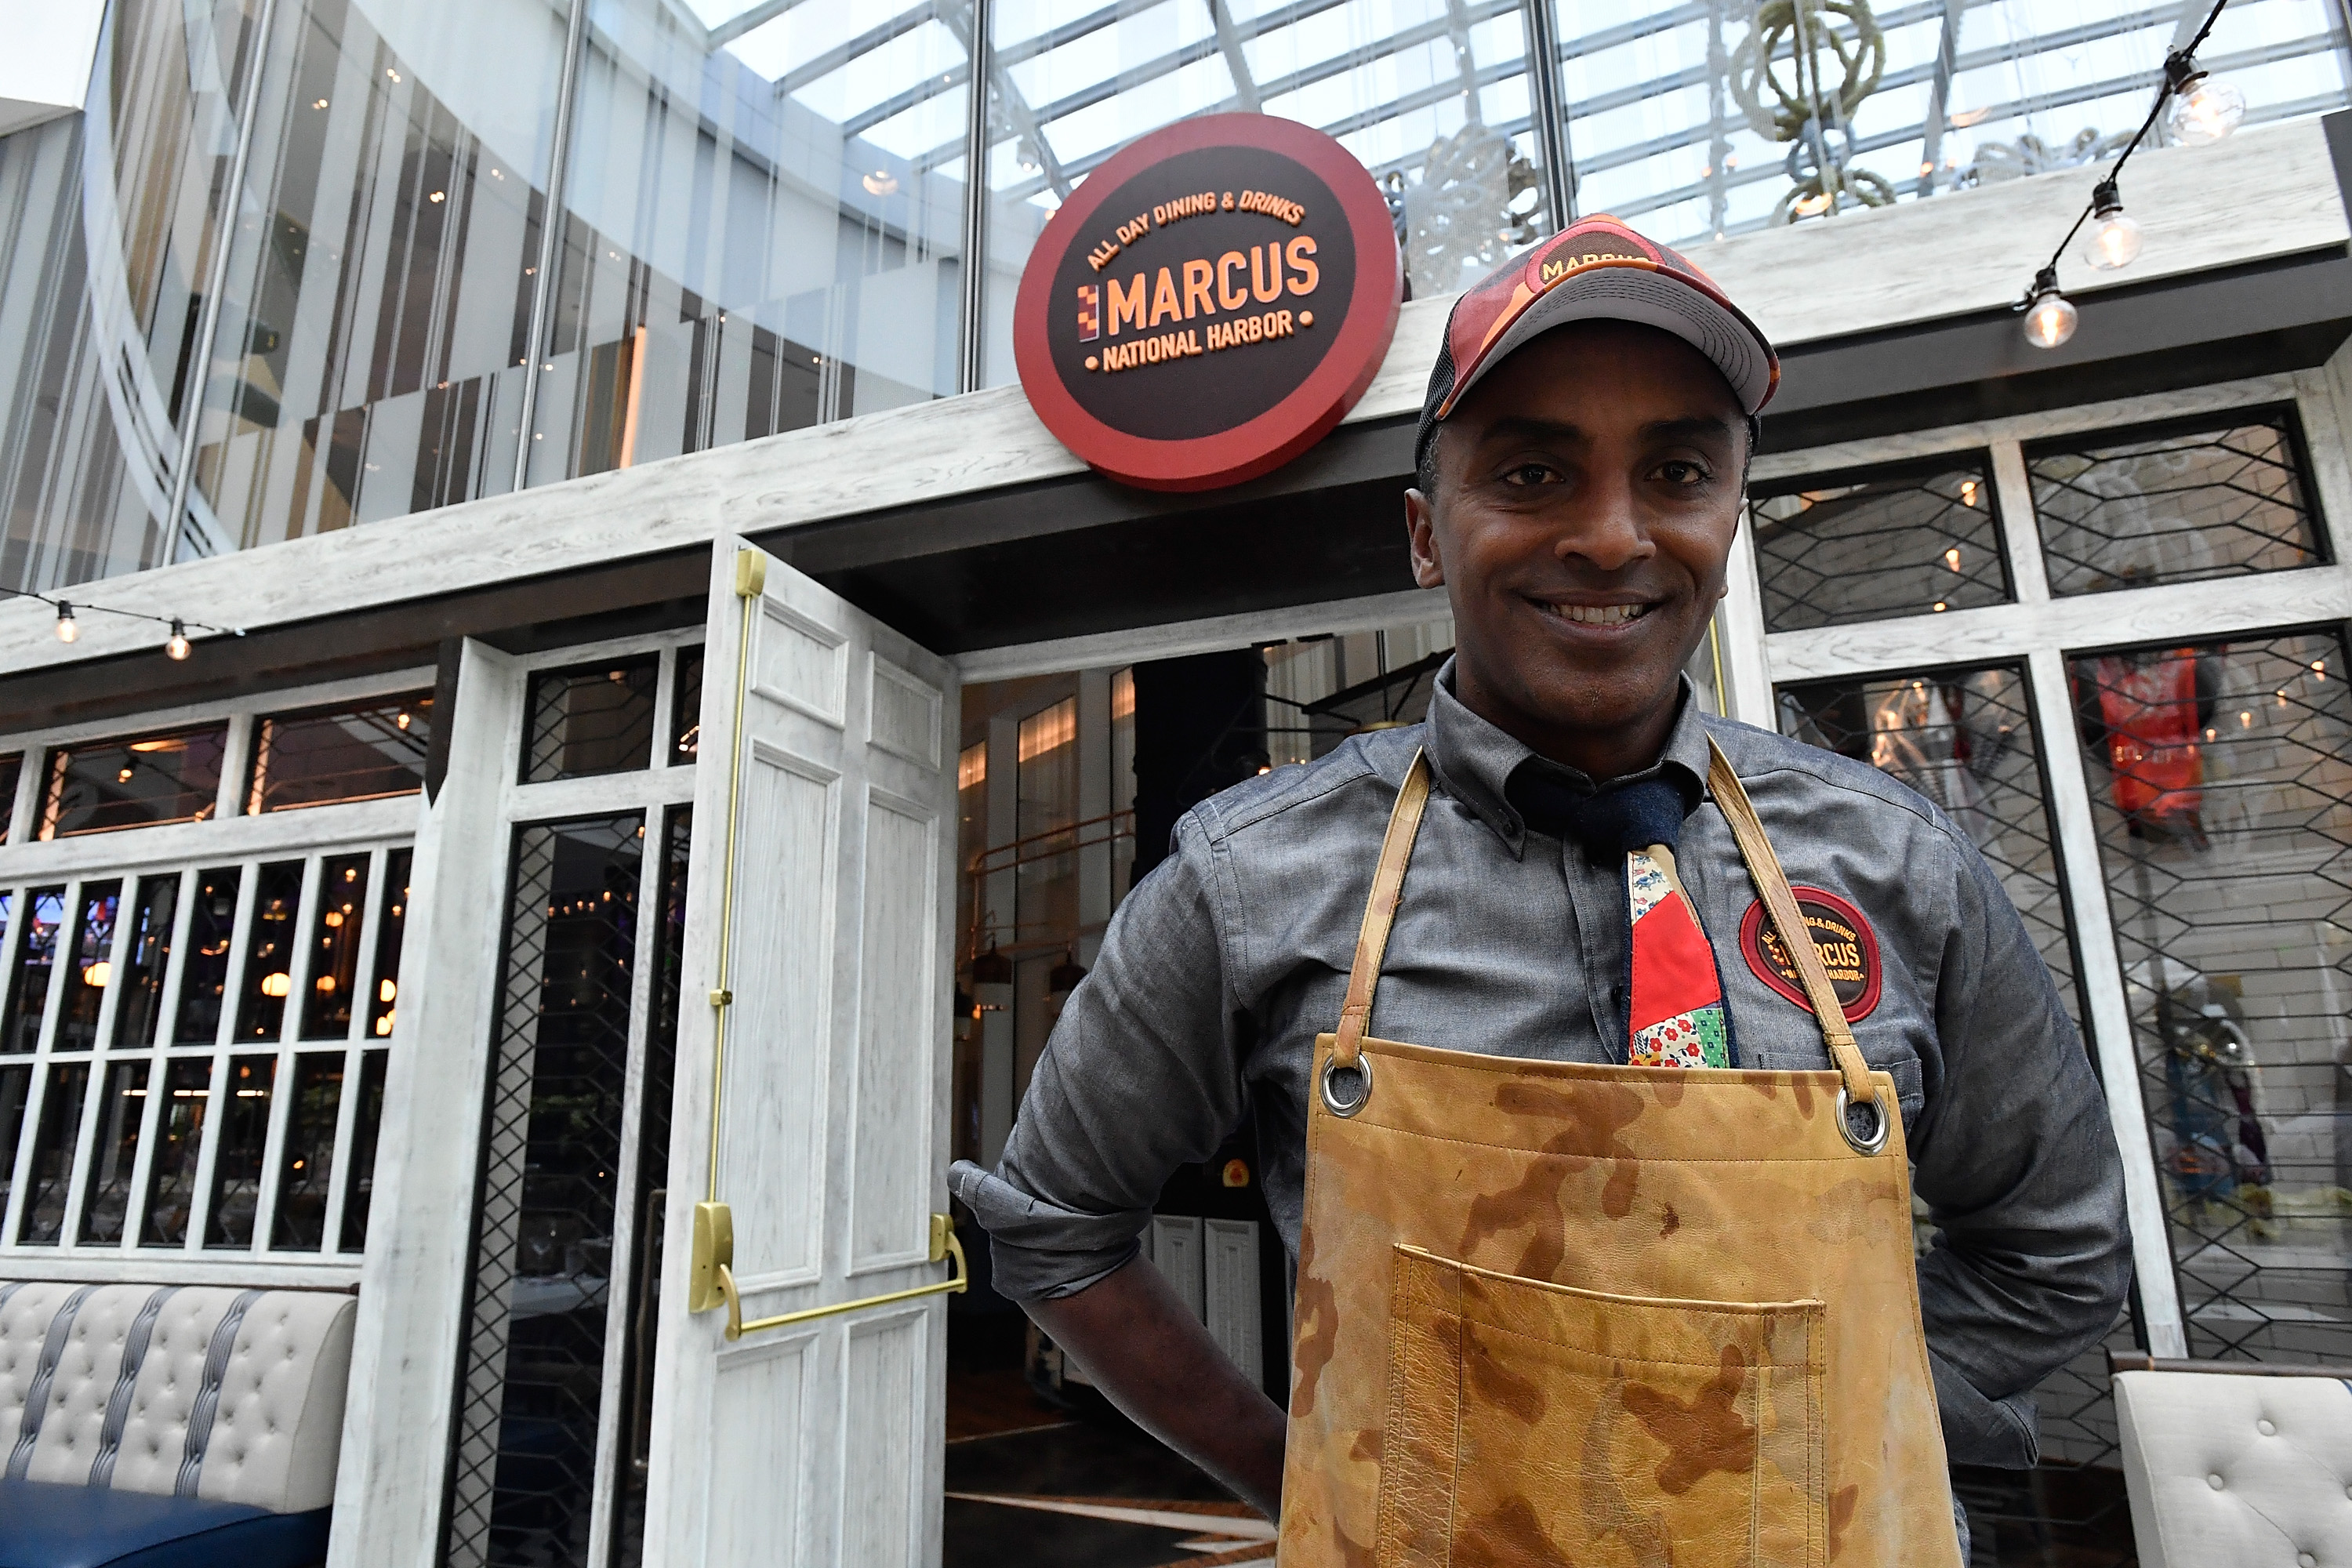 Chef Marcus Samuelsson opens MARCUS at the MGM National Harbor Grand Opening Celebration on December 8, 2016 in National Harbor, Maryland.